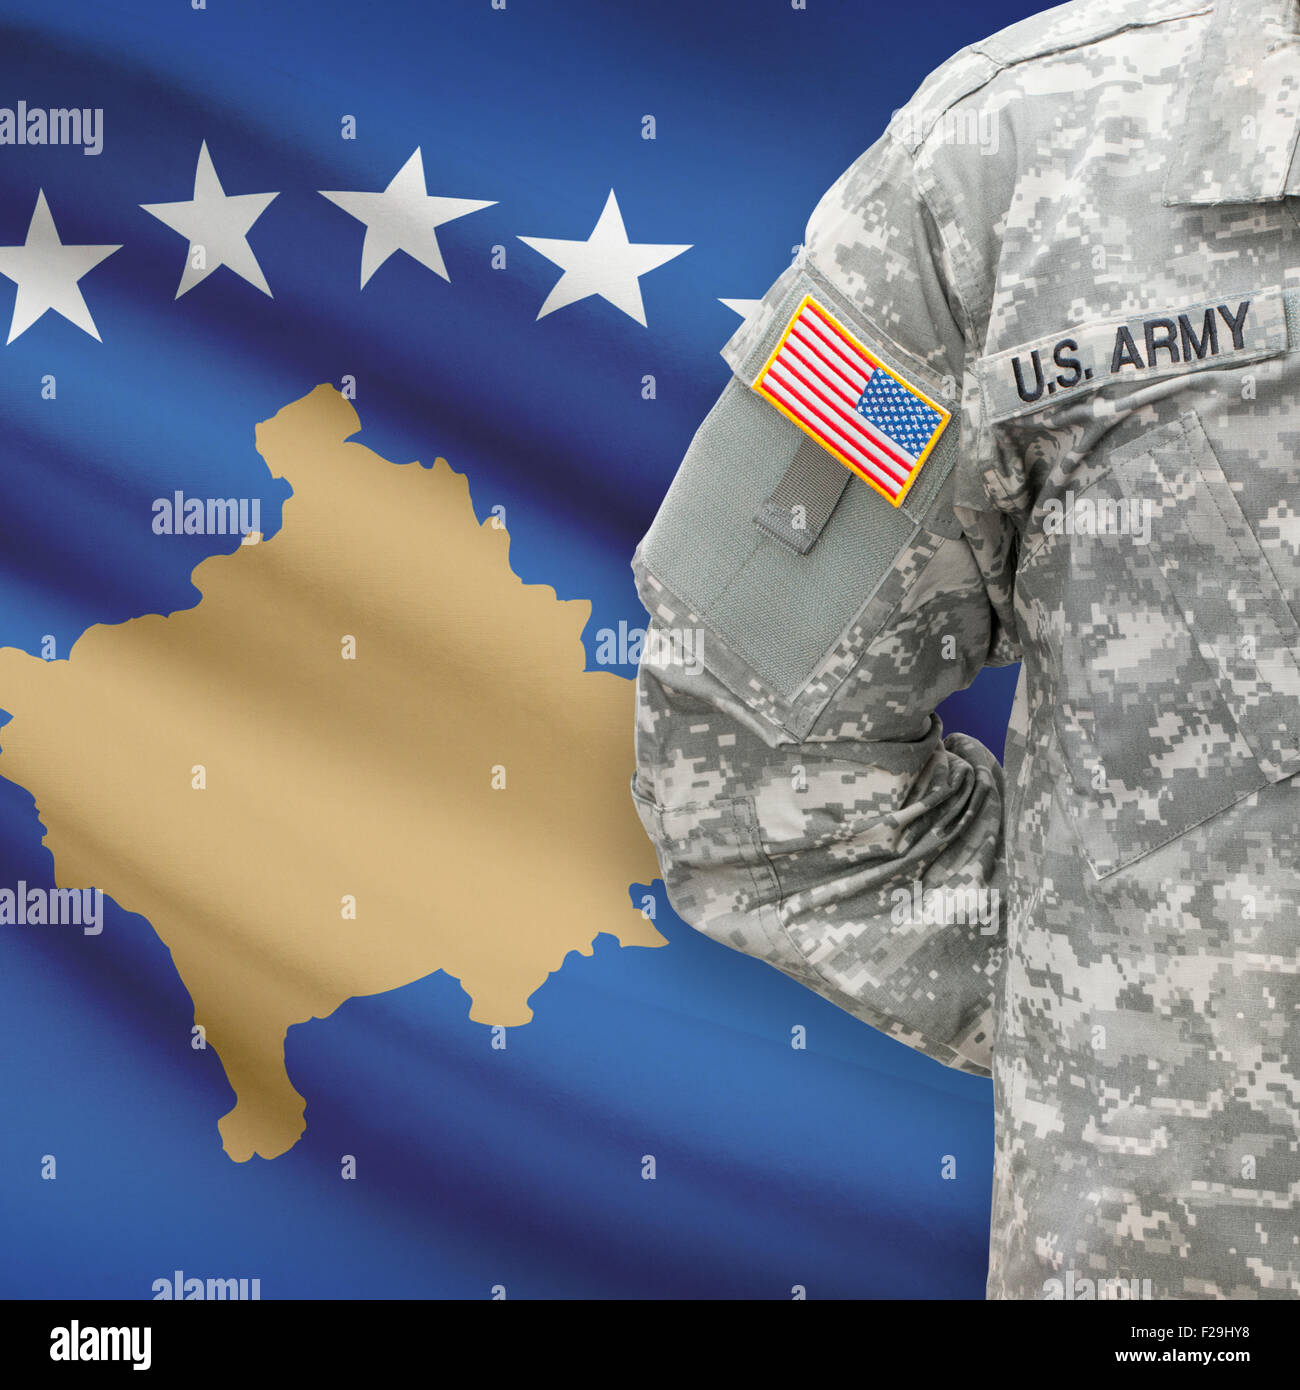 American soldier with flag on background series - Kosovo Stock Photo